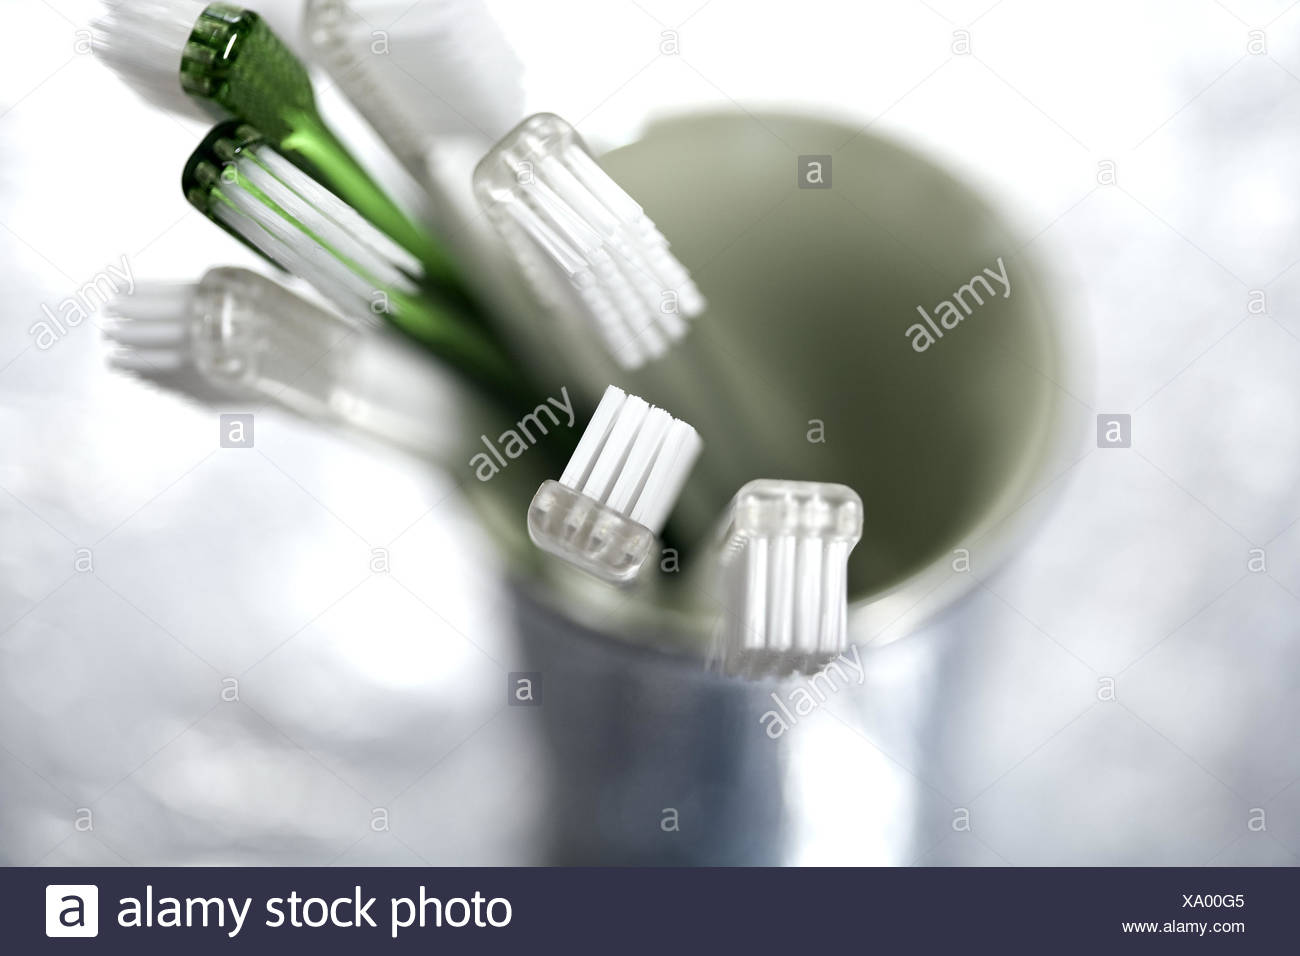 Toothbrush tumbler, toothbrushes, many, detail, blur, - Stock Image